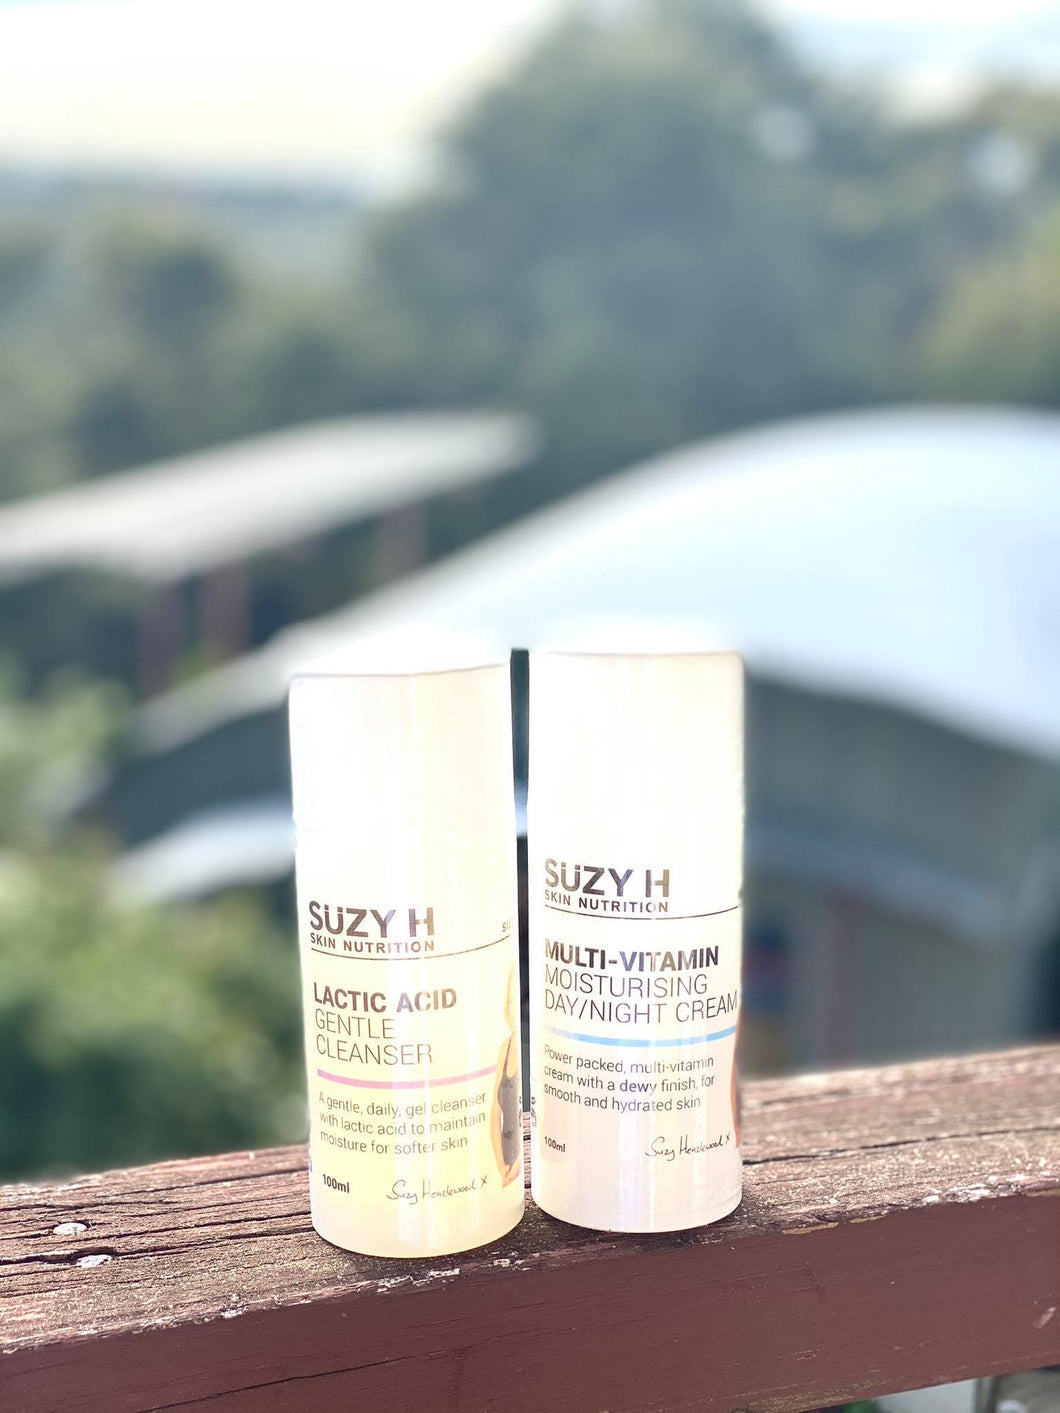 Dynamic Duo's - Lactic Acid Cleanser + Multi-Vitamin Day/Night Cream